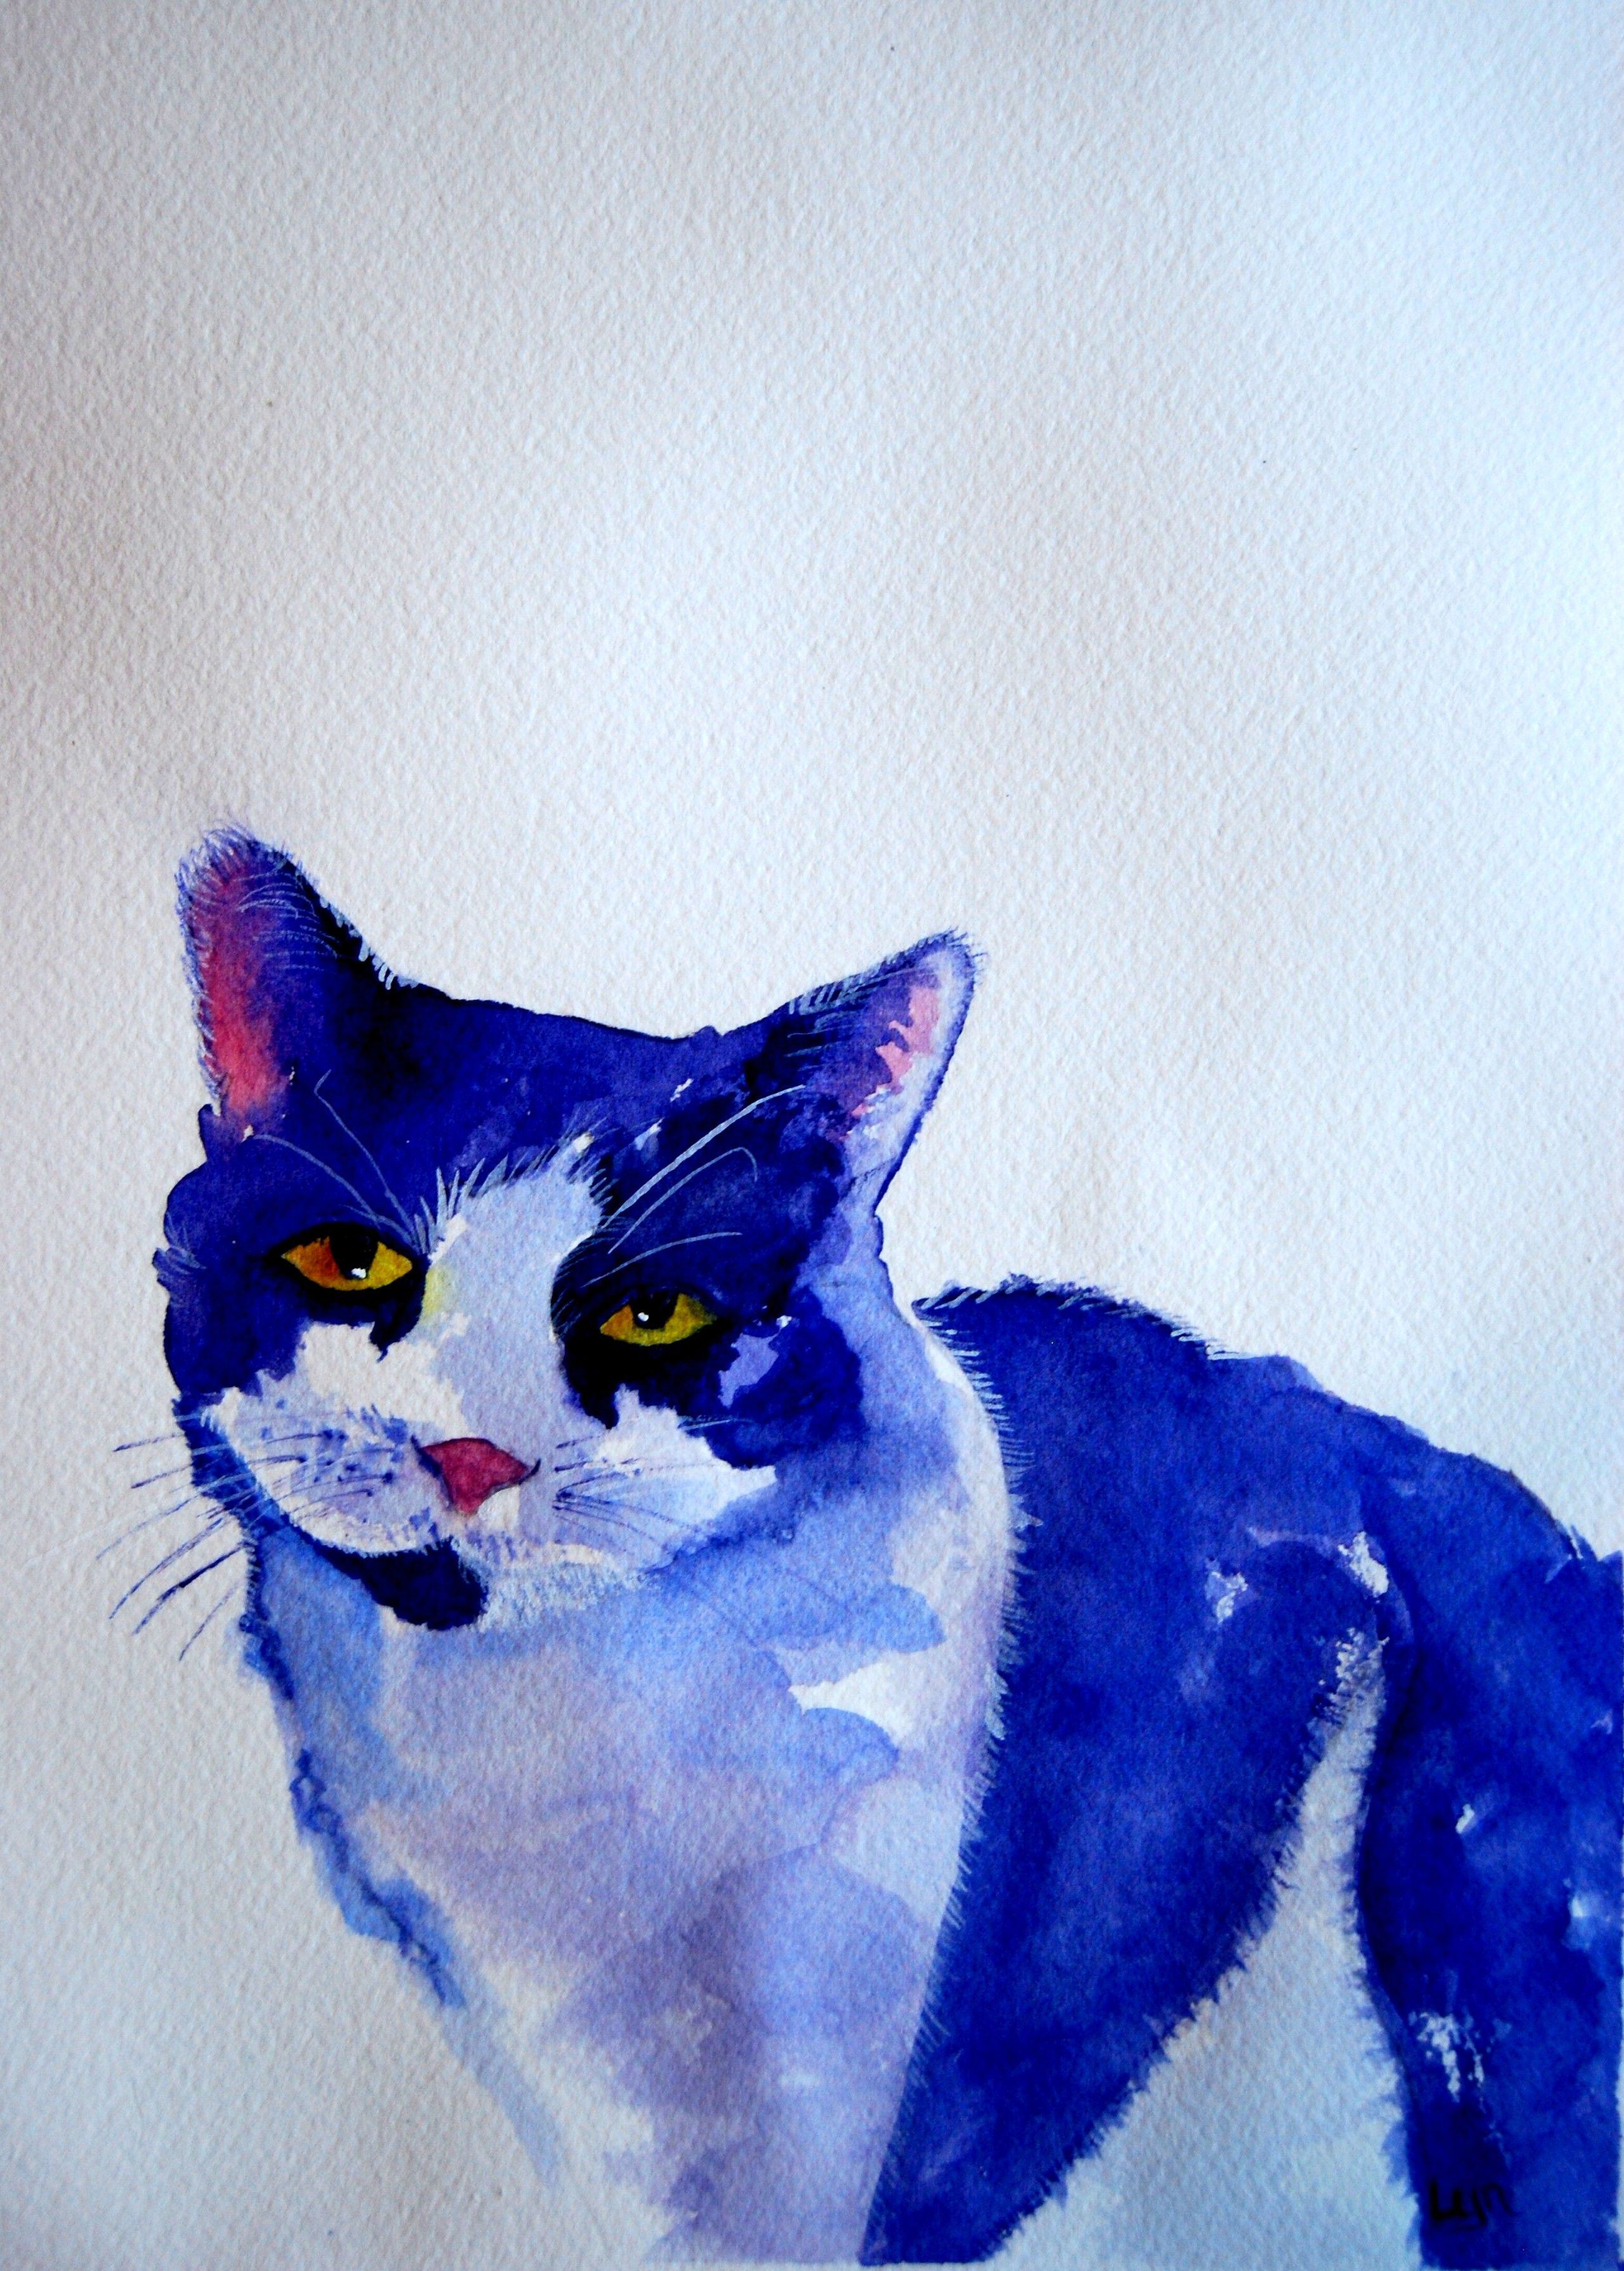 Sarah is one of my cats and she adorns the front of my book Paws 'n Ponder   Watercolor by Lynda Nolte. Paws 'n Ponder painting was juried into the NVAL National Show.